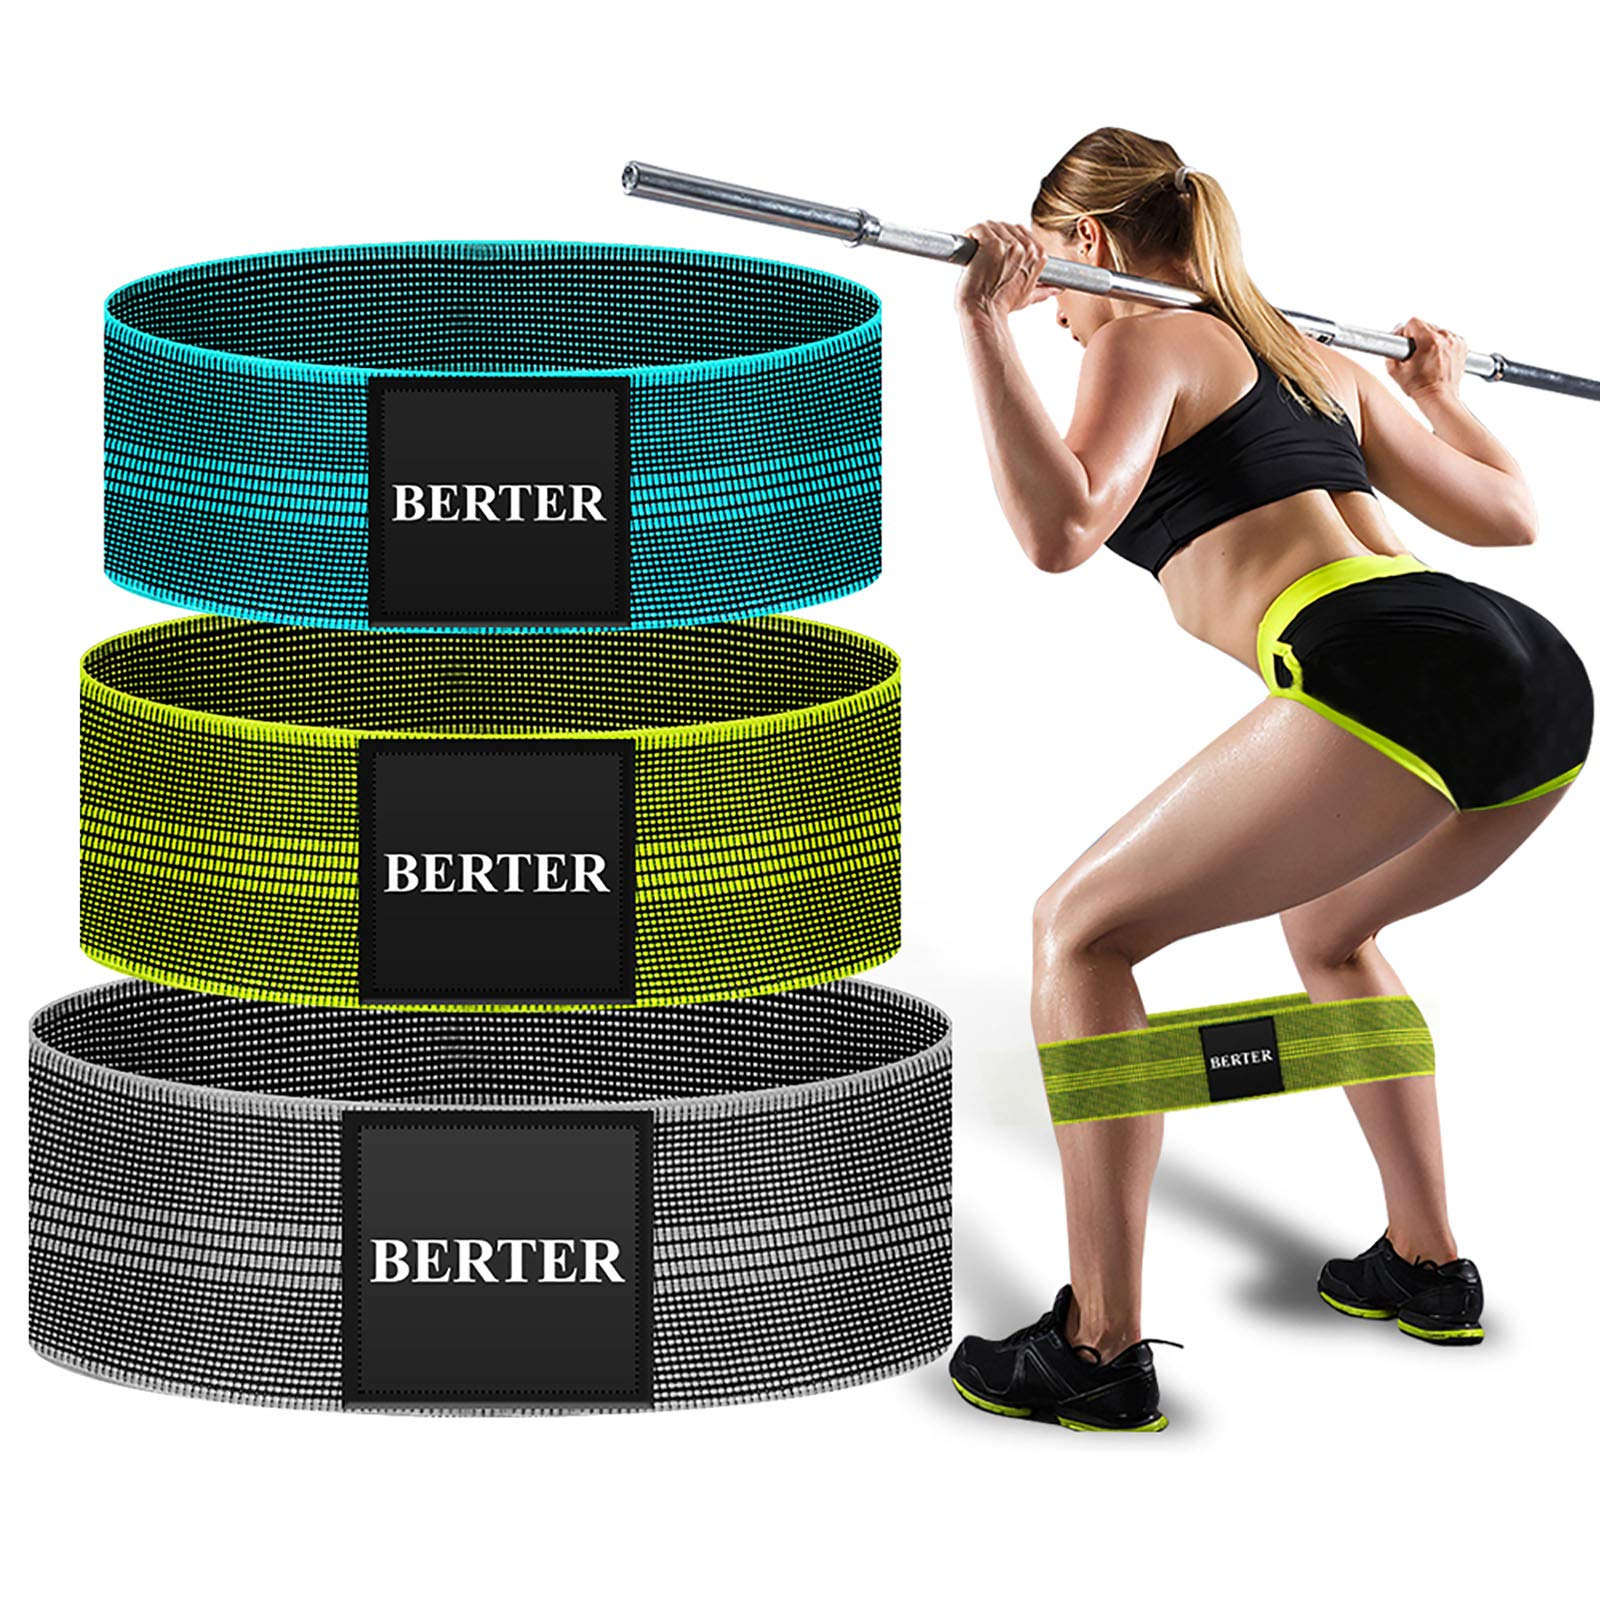 BERTER Resistance Bands for Legs and Butt, Workout Exercise Hip Bands, Fitness Booty Loop Non-Slip Bands for Squats, Deadlifts, Yoga, Sport, Pack of 3